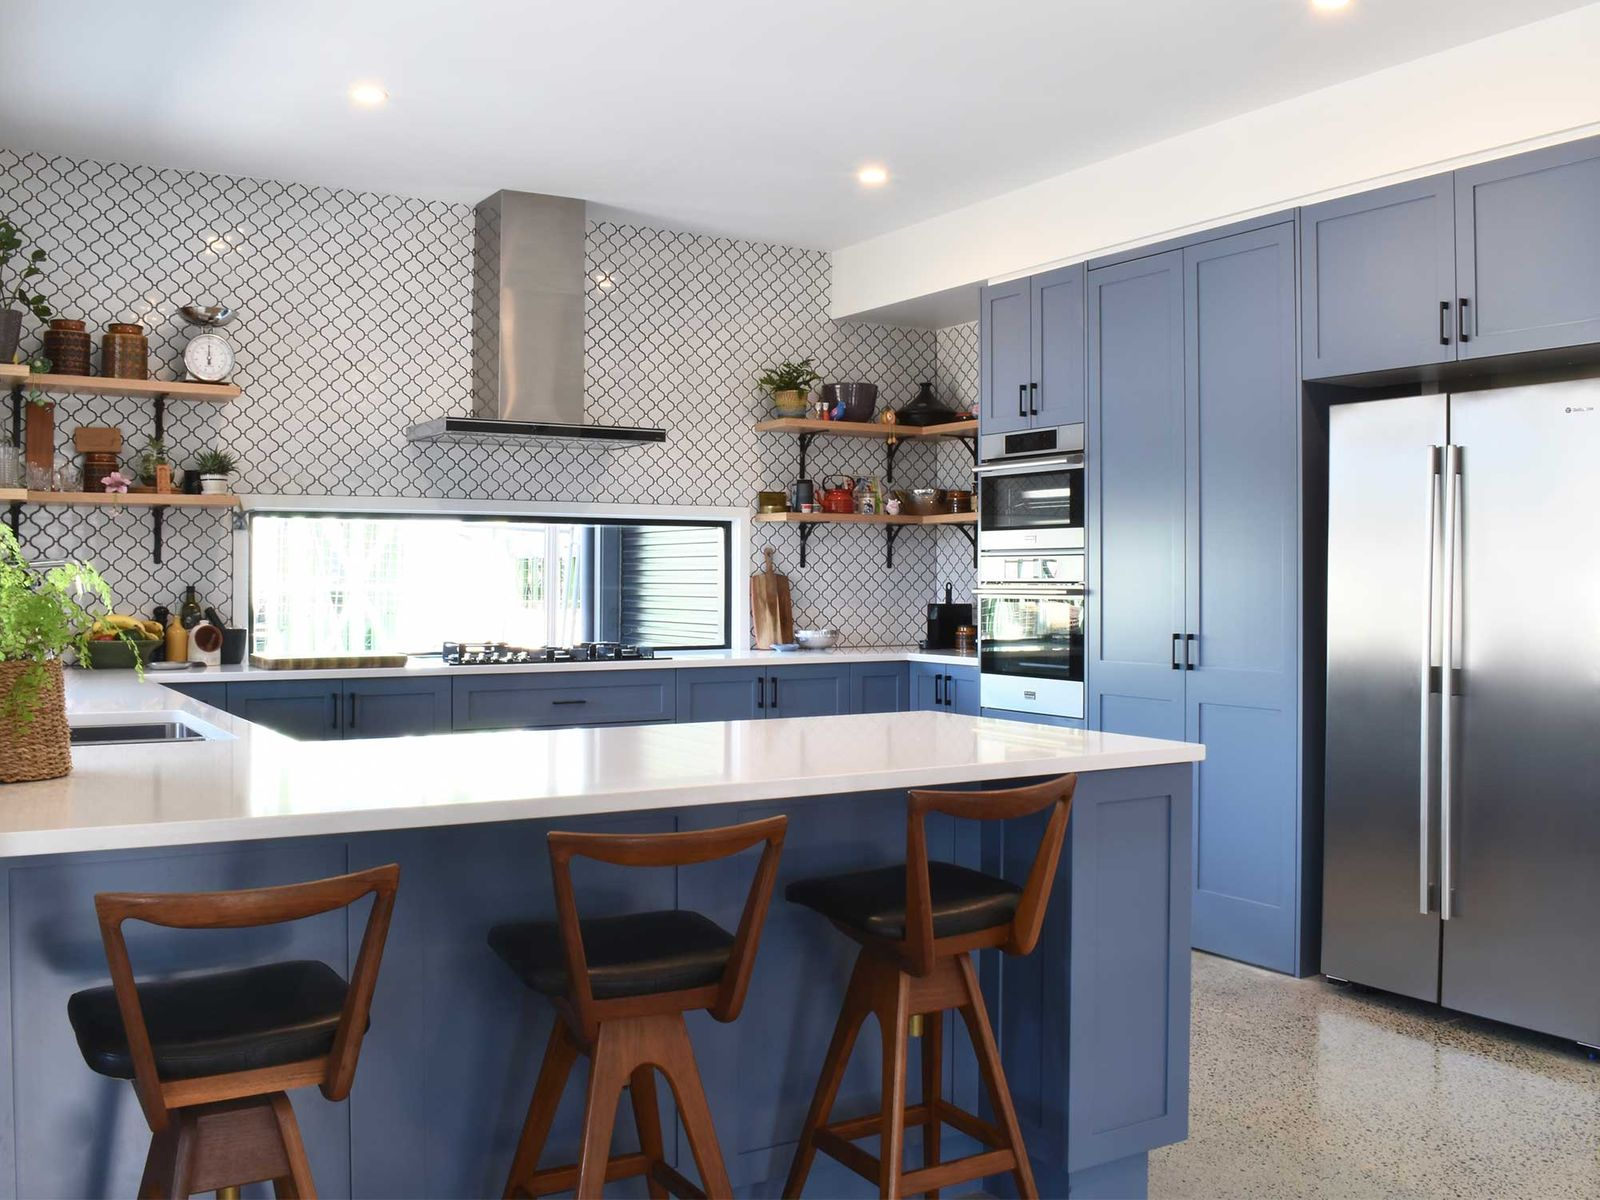 8 Popular Kitchen Cabinet Design Ideas In Malaysia Iproperty Com My